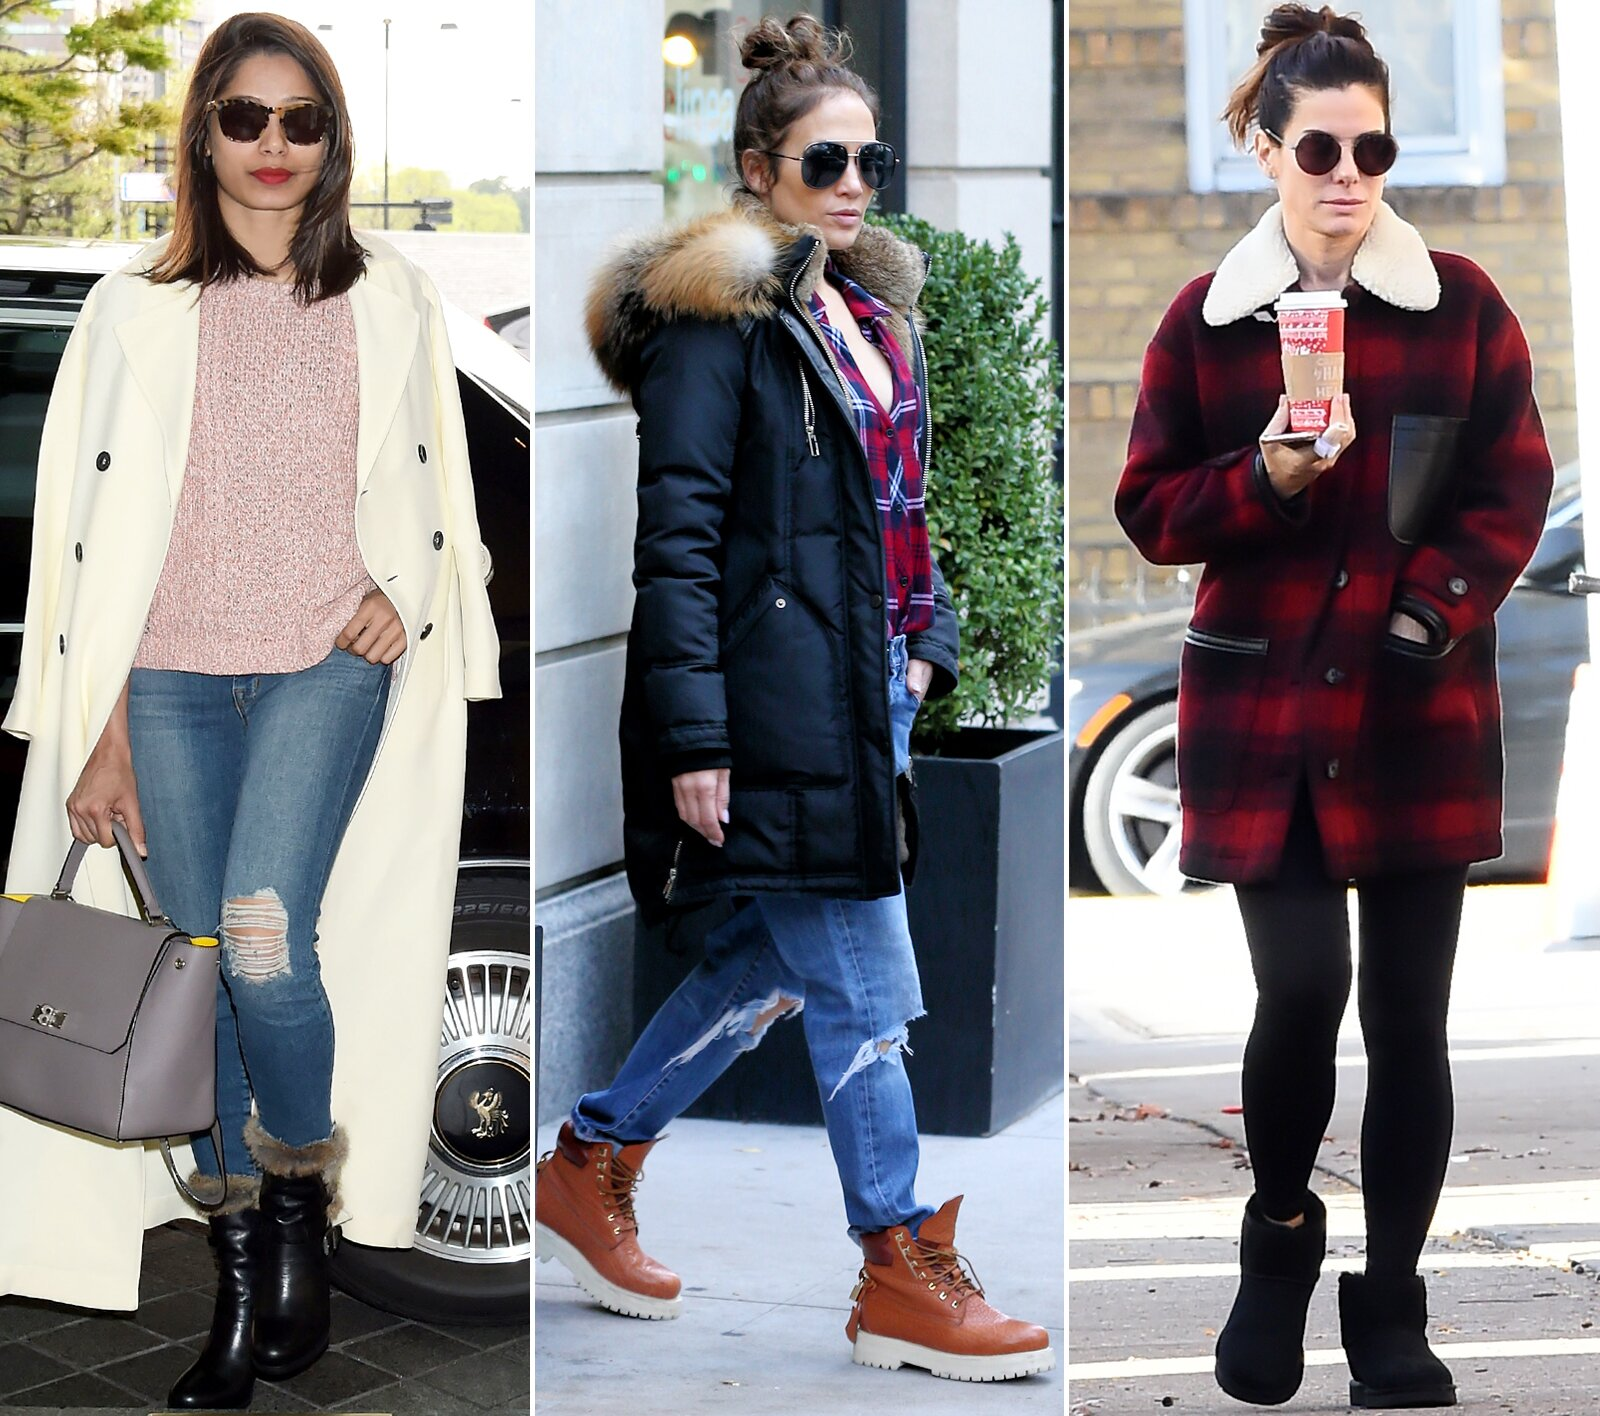 84d4c48cc Where to Buy Winter Boots the Celebs Are Wearing